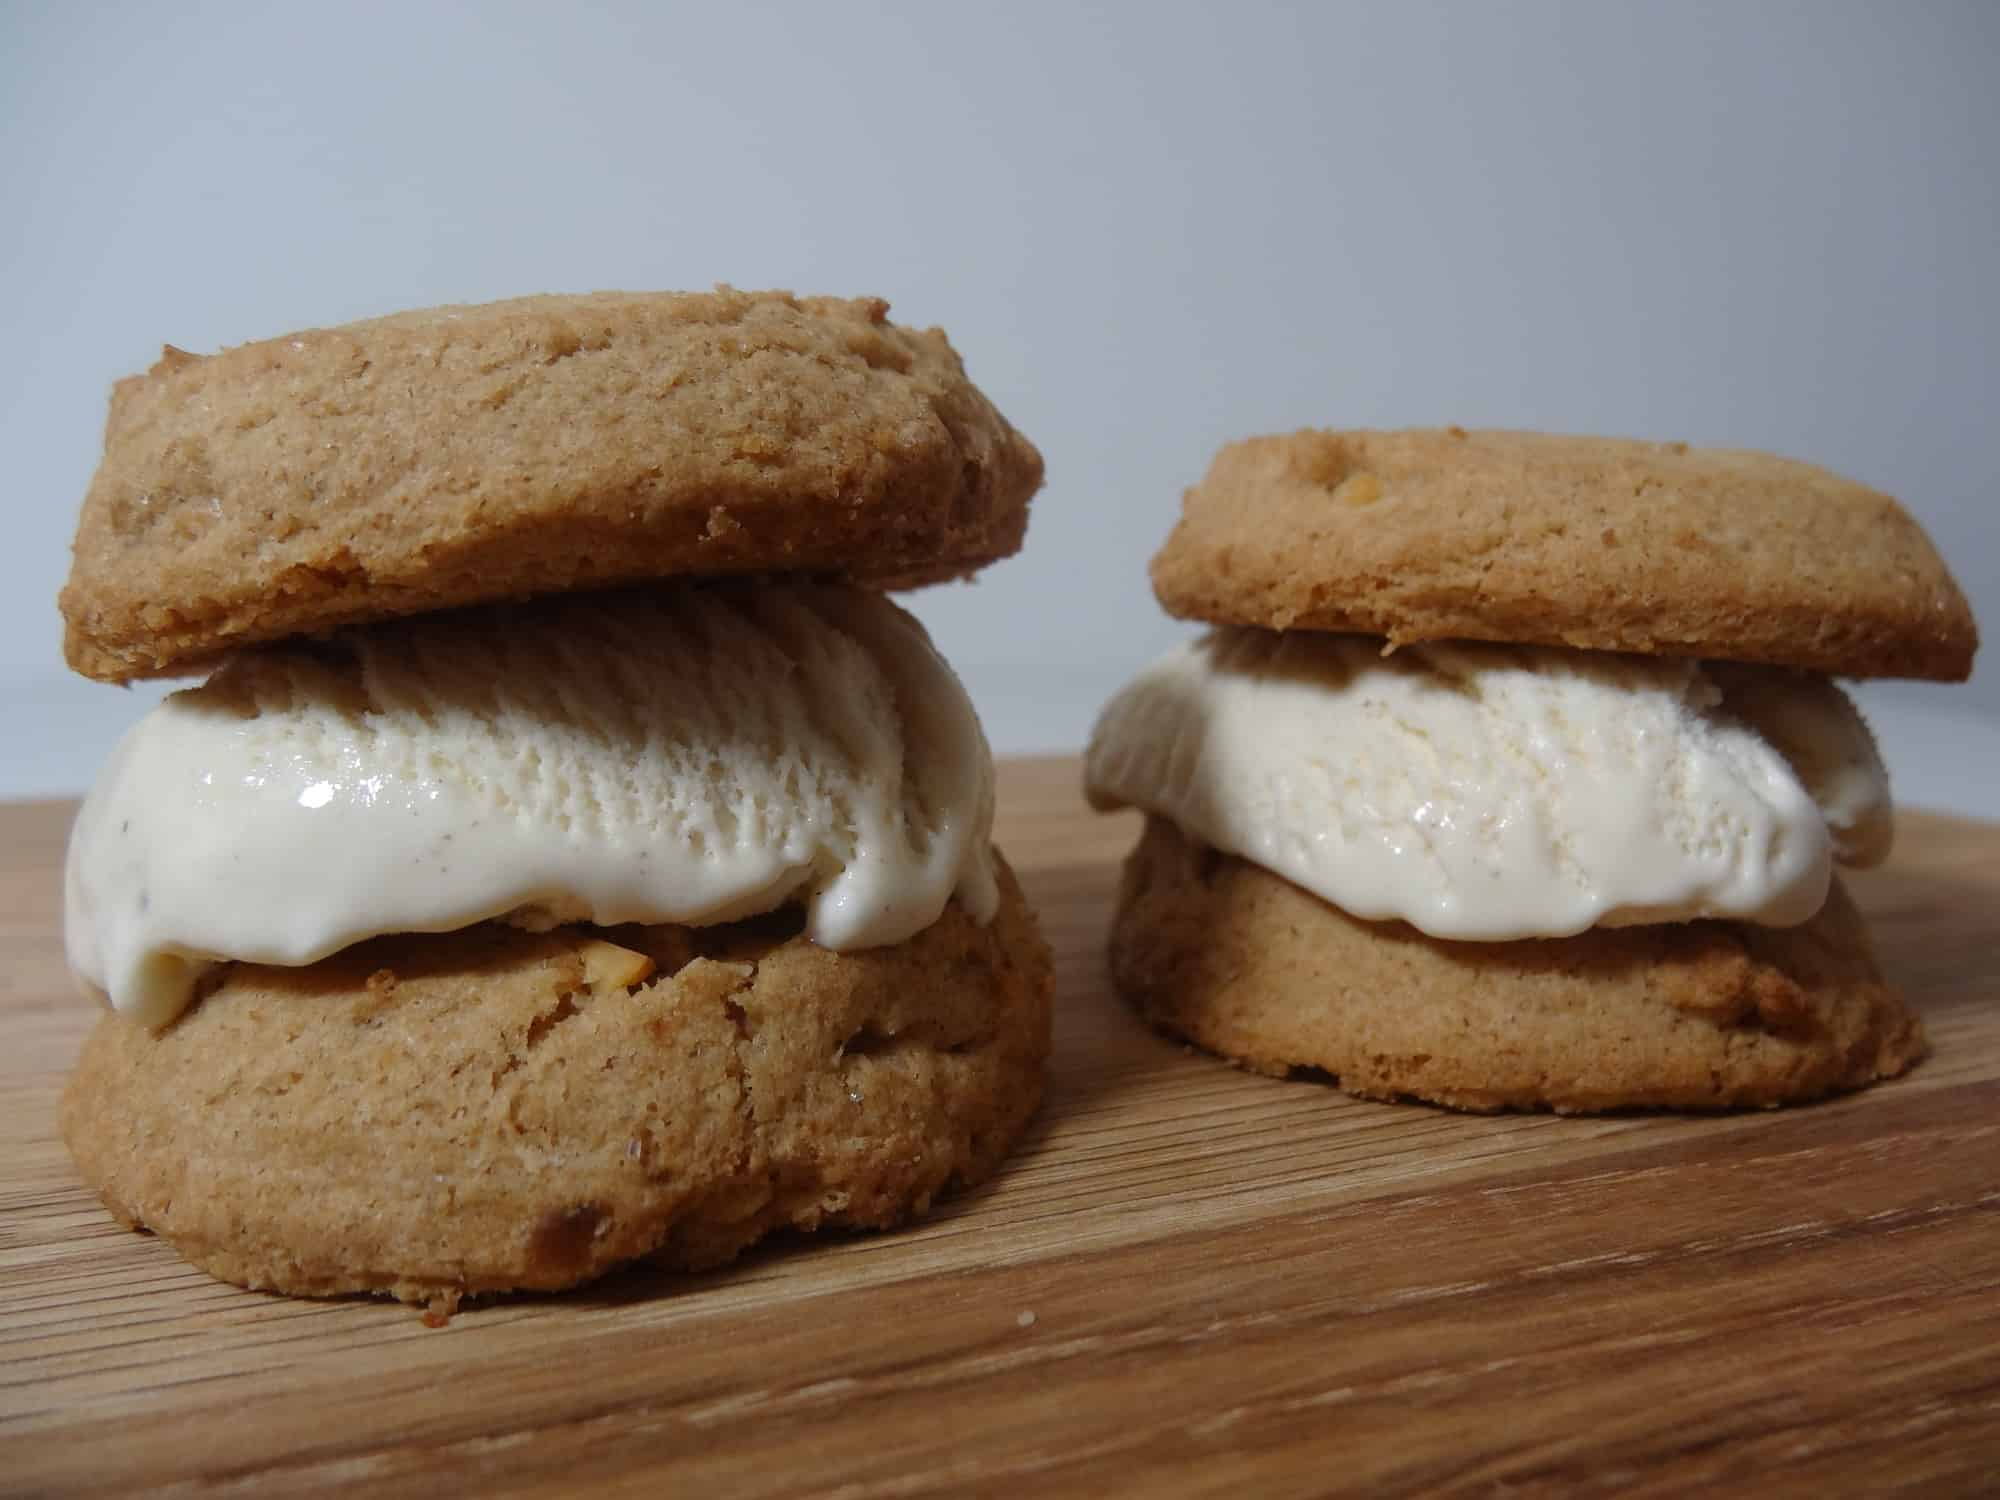 Making rich and creamy dairy-free ice cream at home is a cinch using this simple recipe